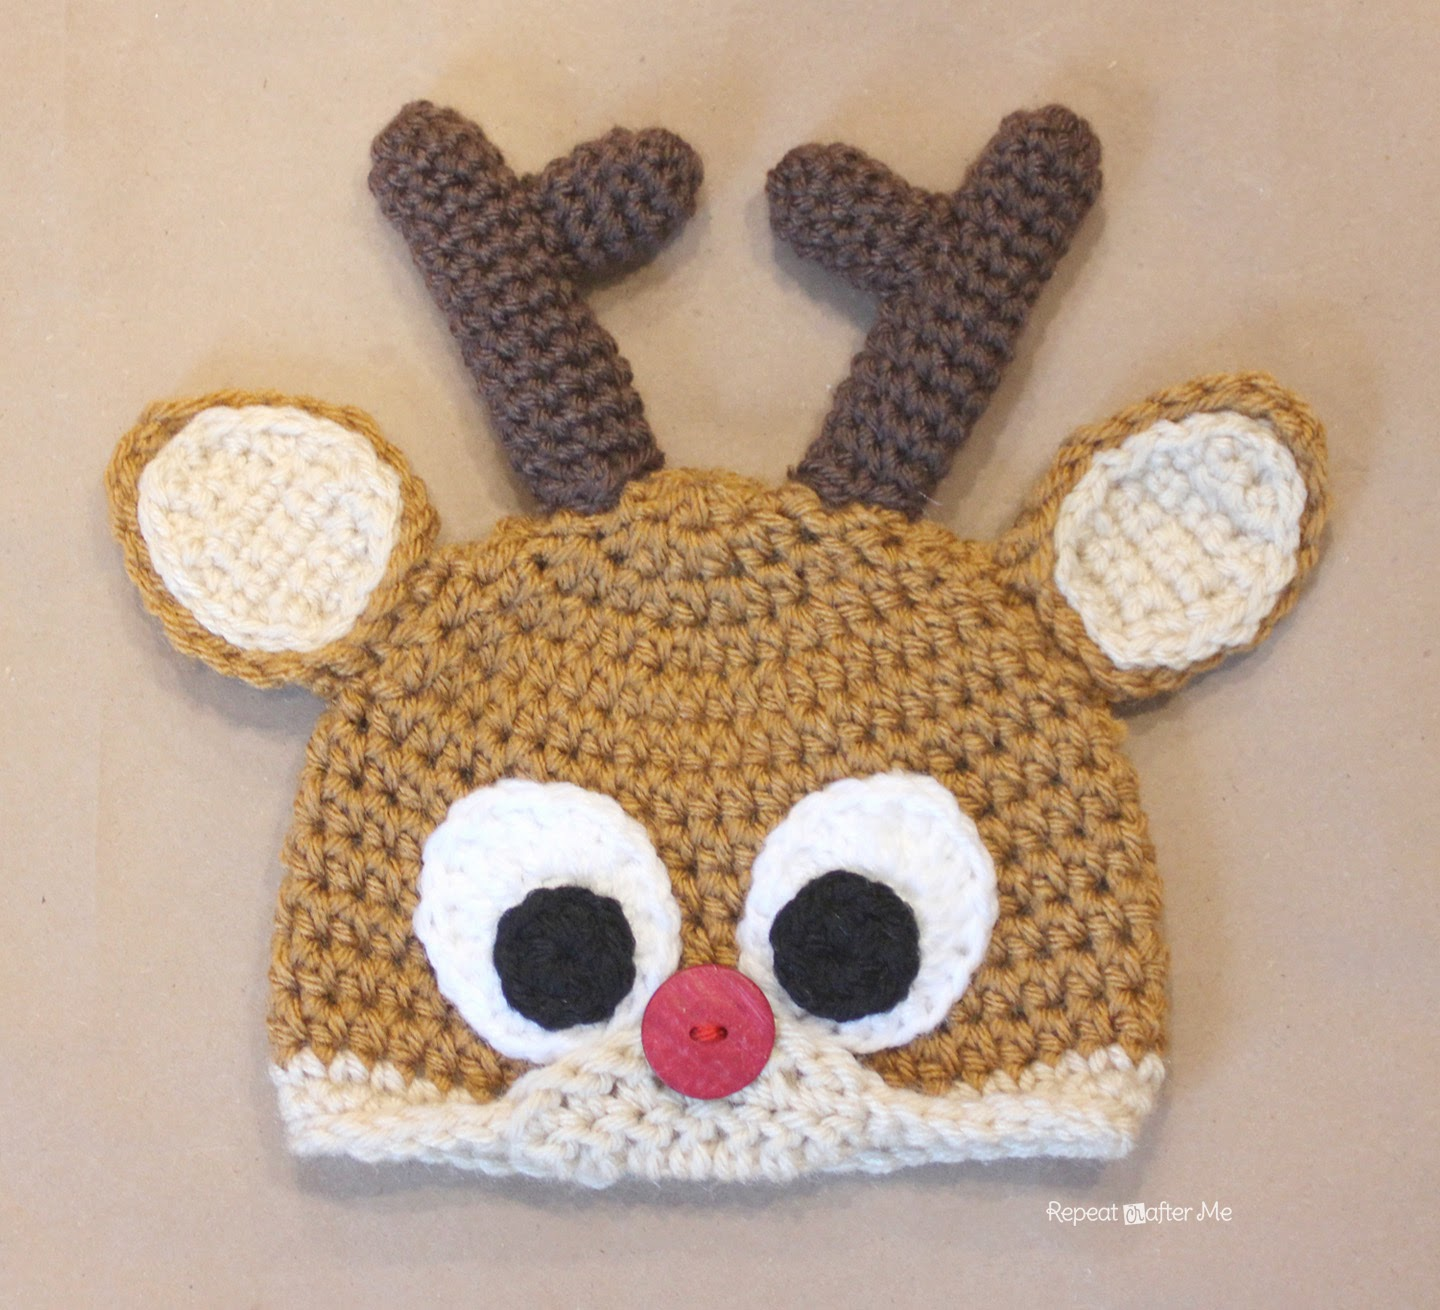 Knitting Pattern For Reindeer Antlers : Crochet Reindeer Antlers Pattern - Repeat Crafter Me